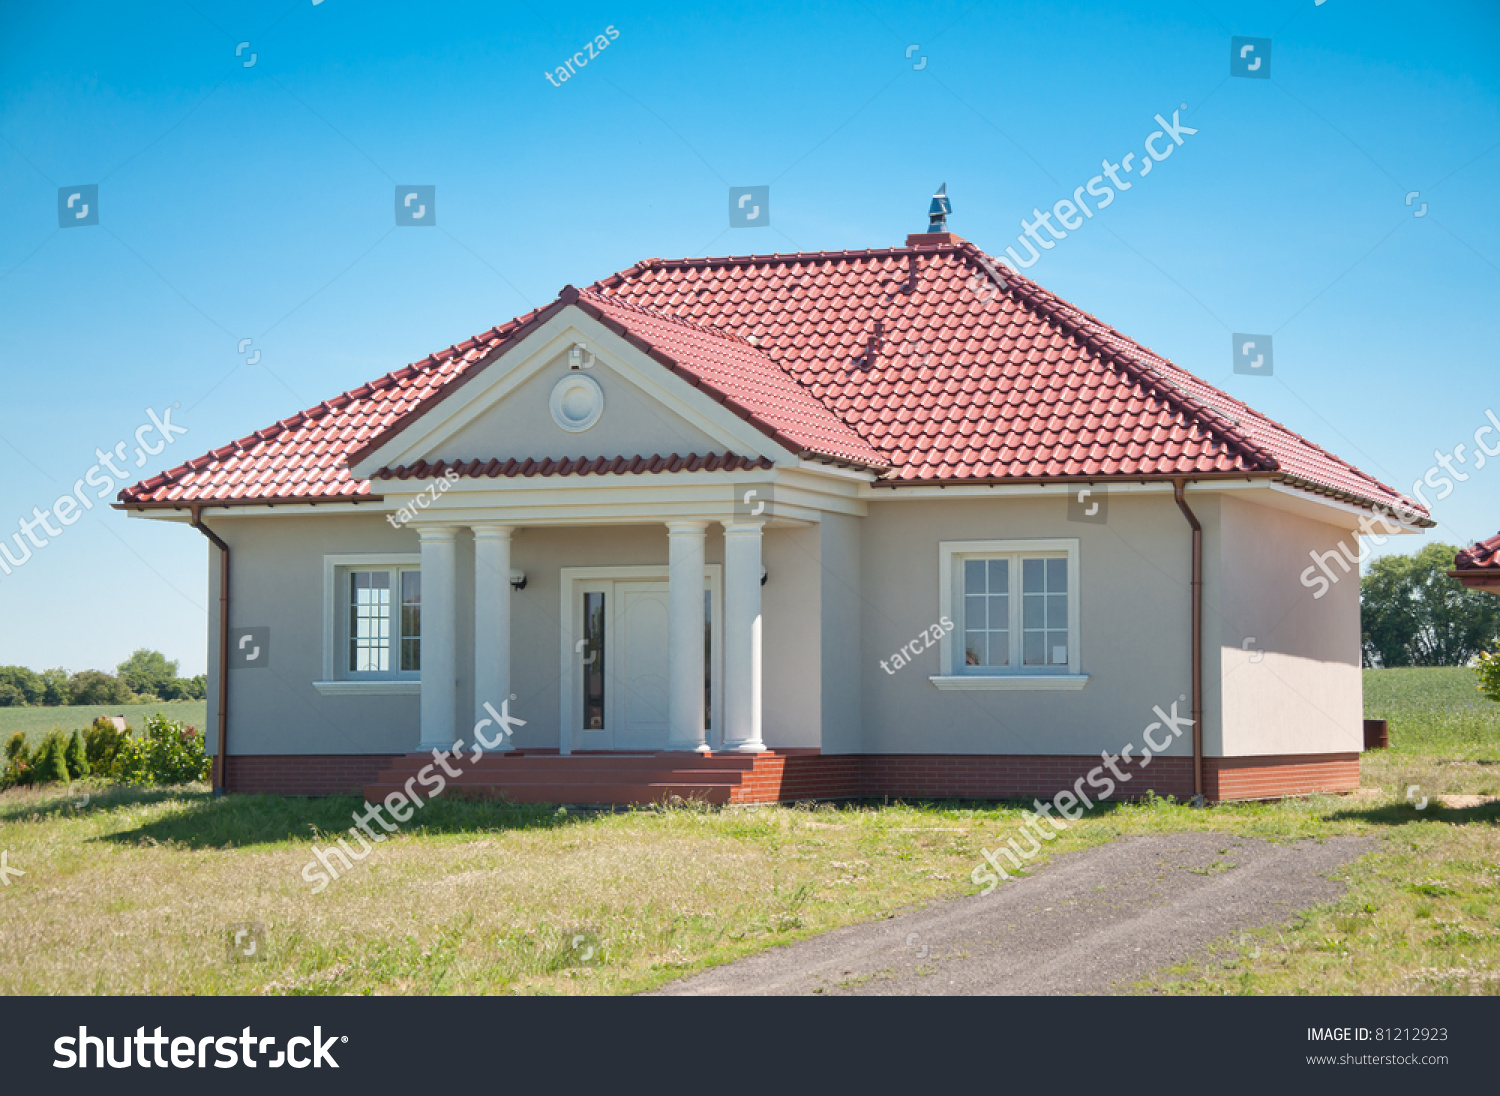 New Small One Family House Stock Photo 81212923 Shutterstock